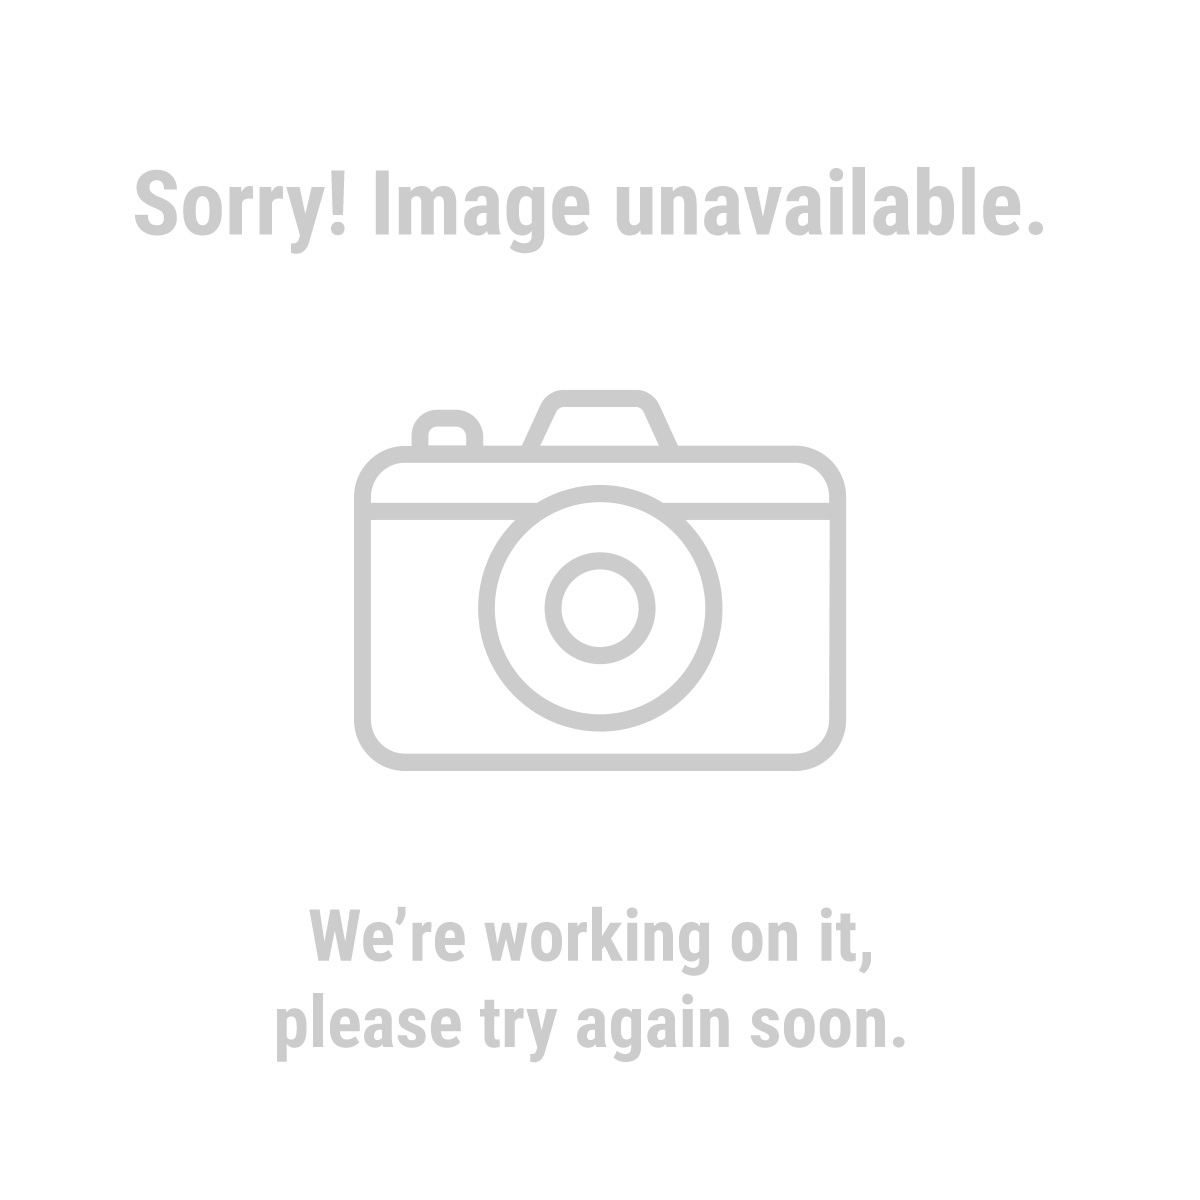 Chicago Electric 37477 12 Ft. 16 Gauge Electrical Indoor Extension Cord